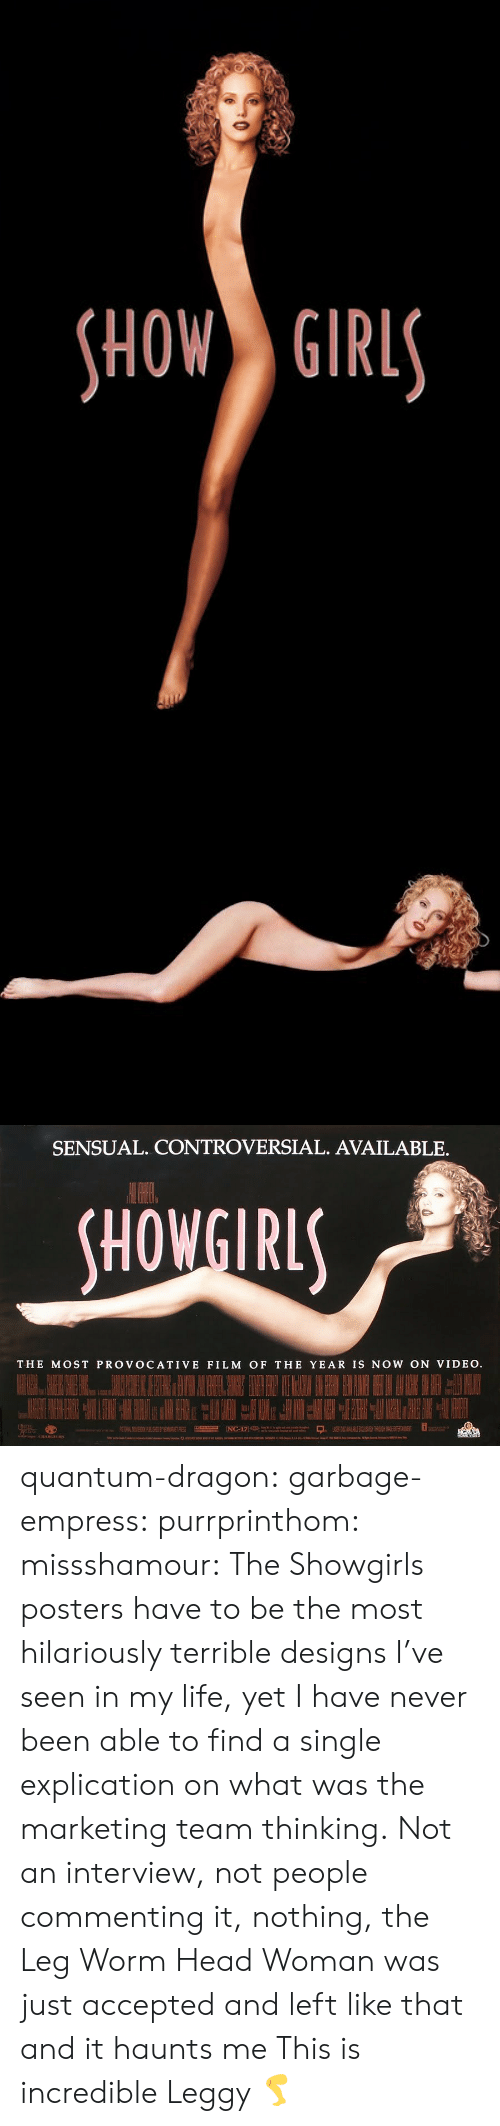 Fake, Head, and Life: HOW GIRL   SENSUAL. CONTROVERSIAL. AVAILABLE.  HOWGIRL  THE MOST PROVOCATIVE FILM OF THE YEAR IS NOW ON VIDEO quantum-dragon:  garbage-empress:  purrprinthom:  missshamour:  The Showgirls posters have to be the most hilariously terrible designs I've seen in my life, yet I have never been able to find a single explication on what was the marketing team thinking. Not an interview, not people commenting it, nothing, the Leg Worm Head Woman was just accepted and left like that and it haunts me  This is incredible        Leggy 🦵